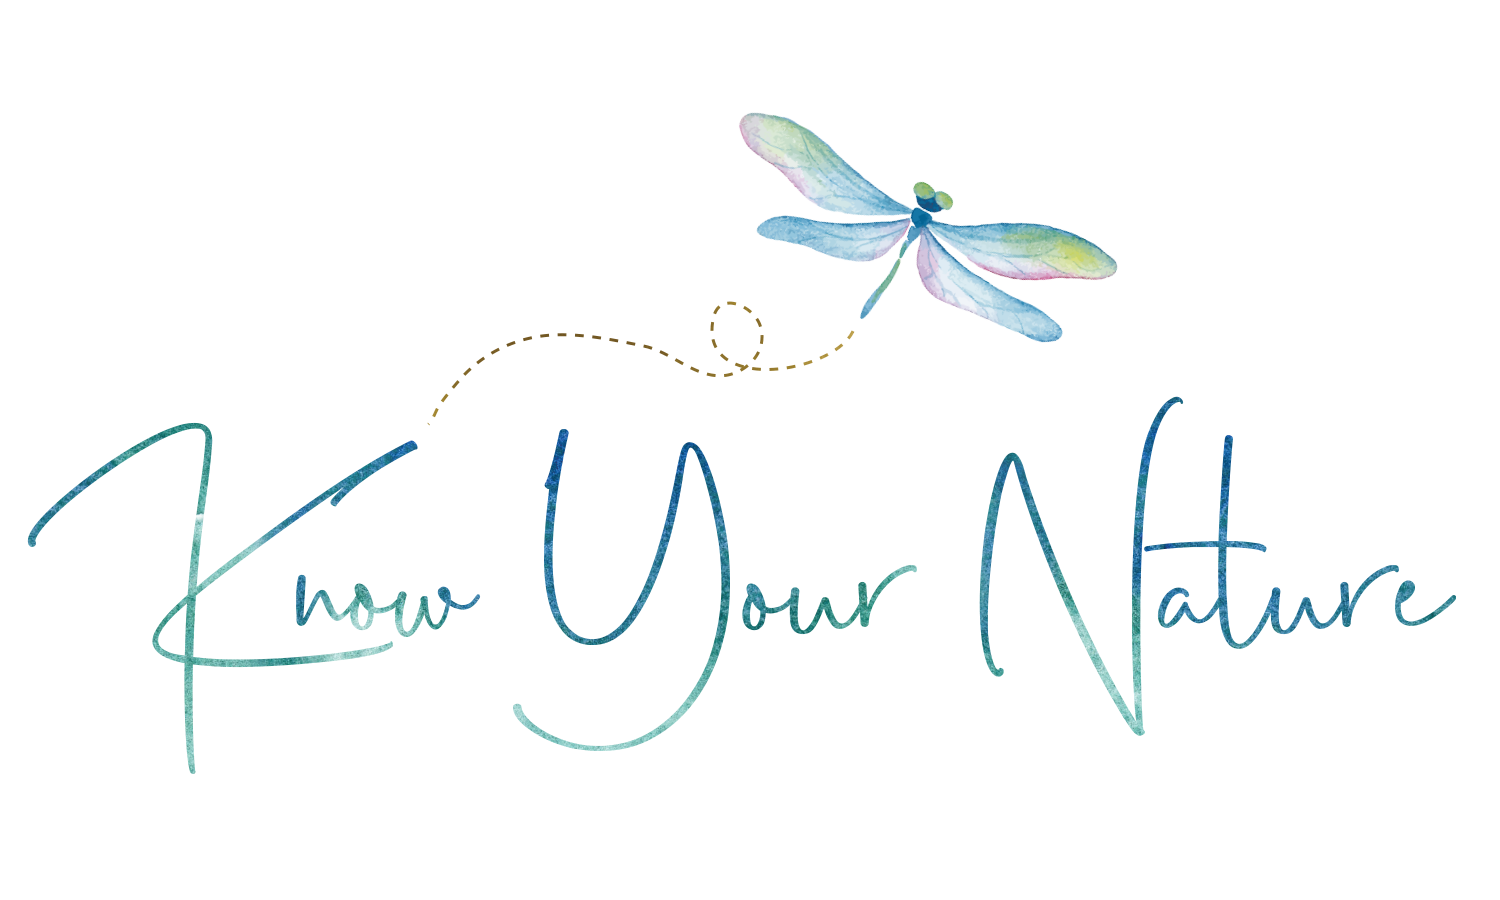 Know Your Nature with a dragonfly